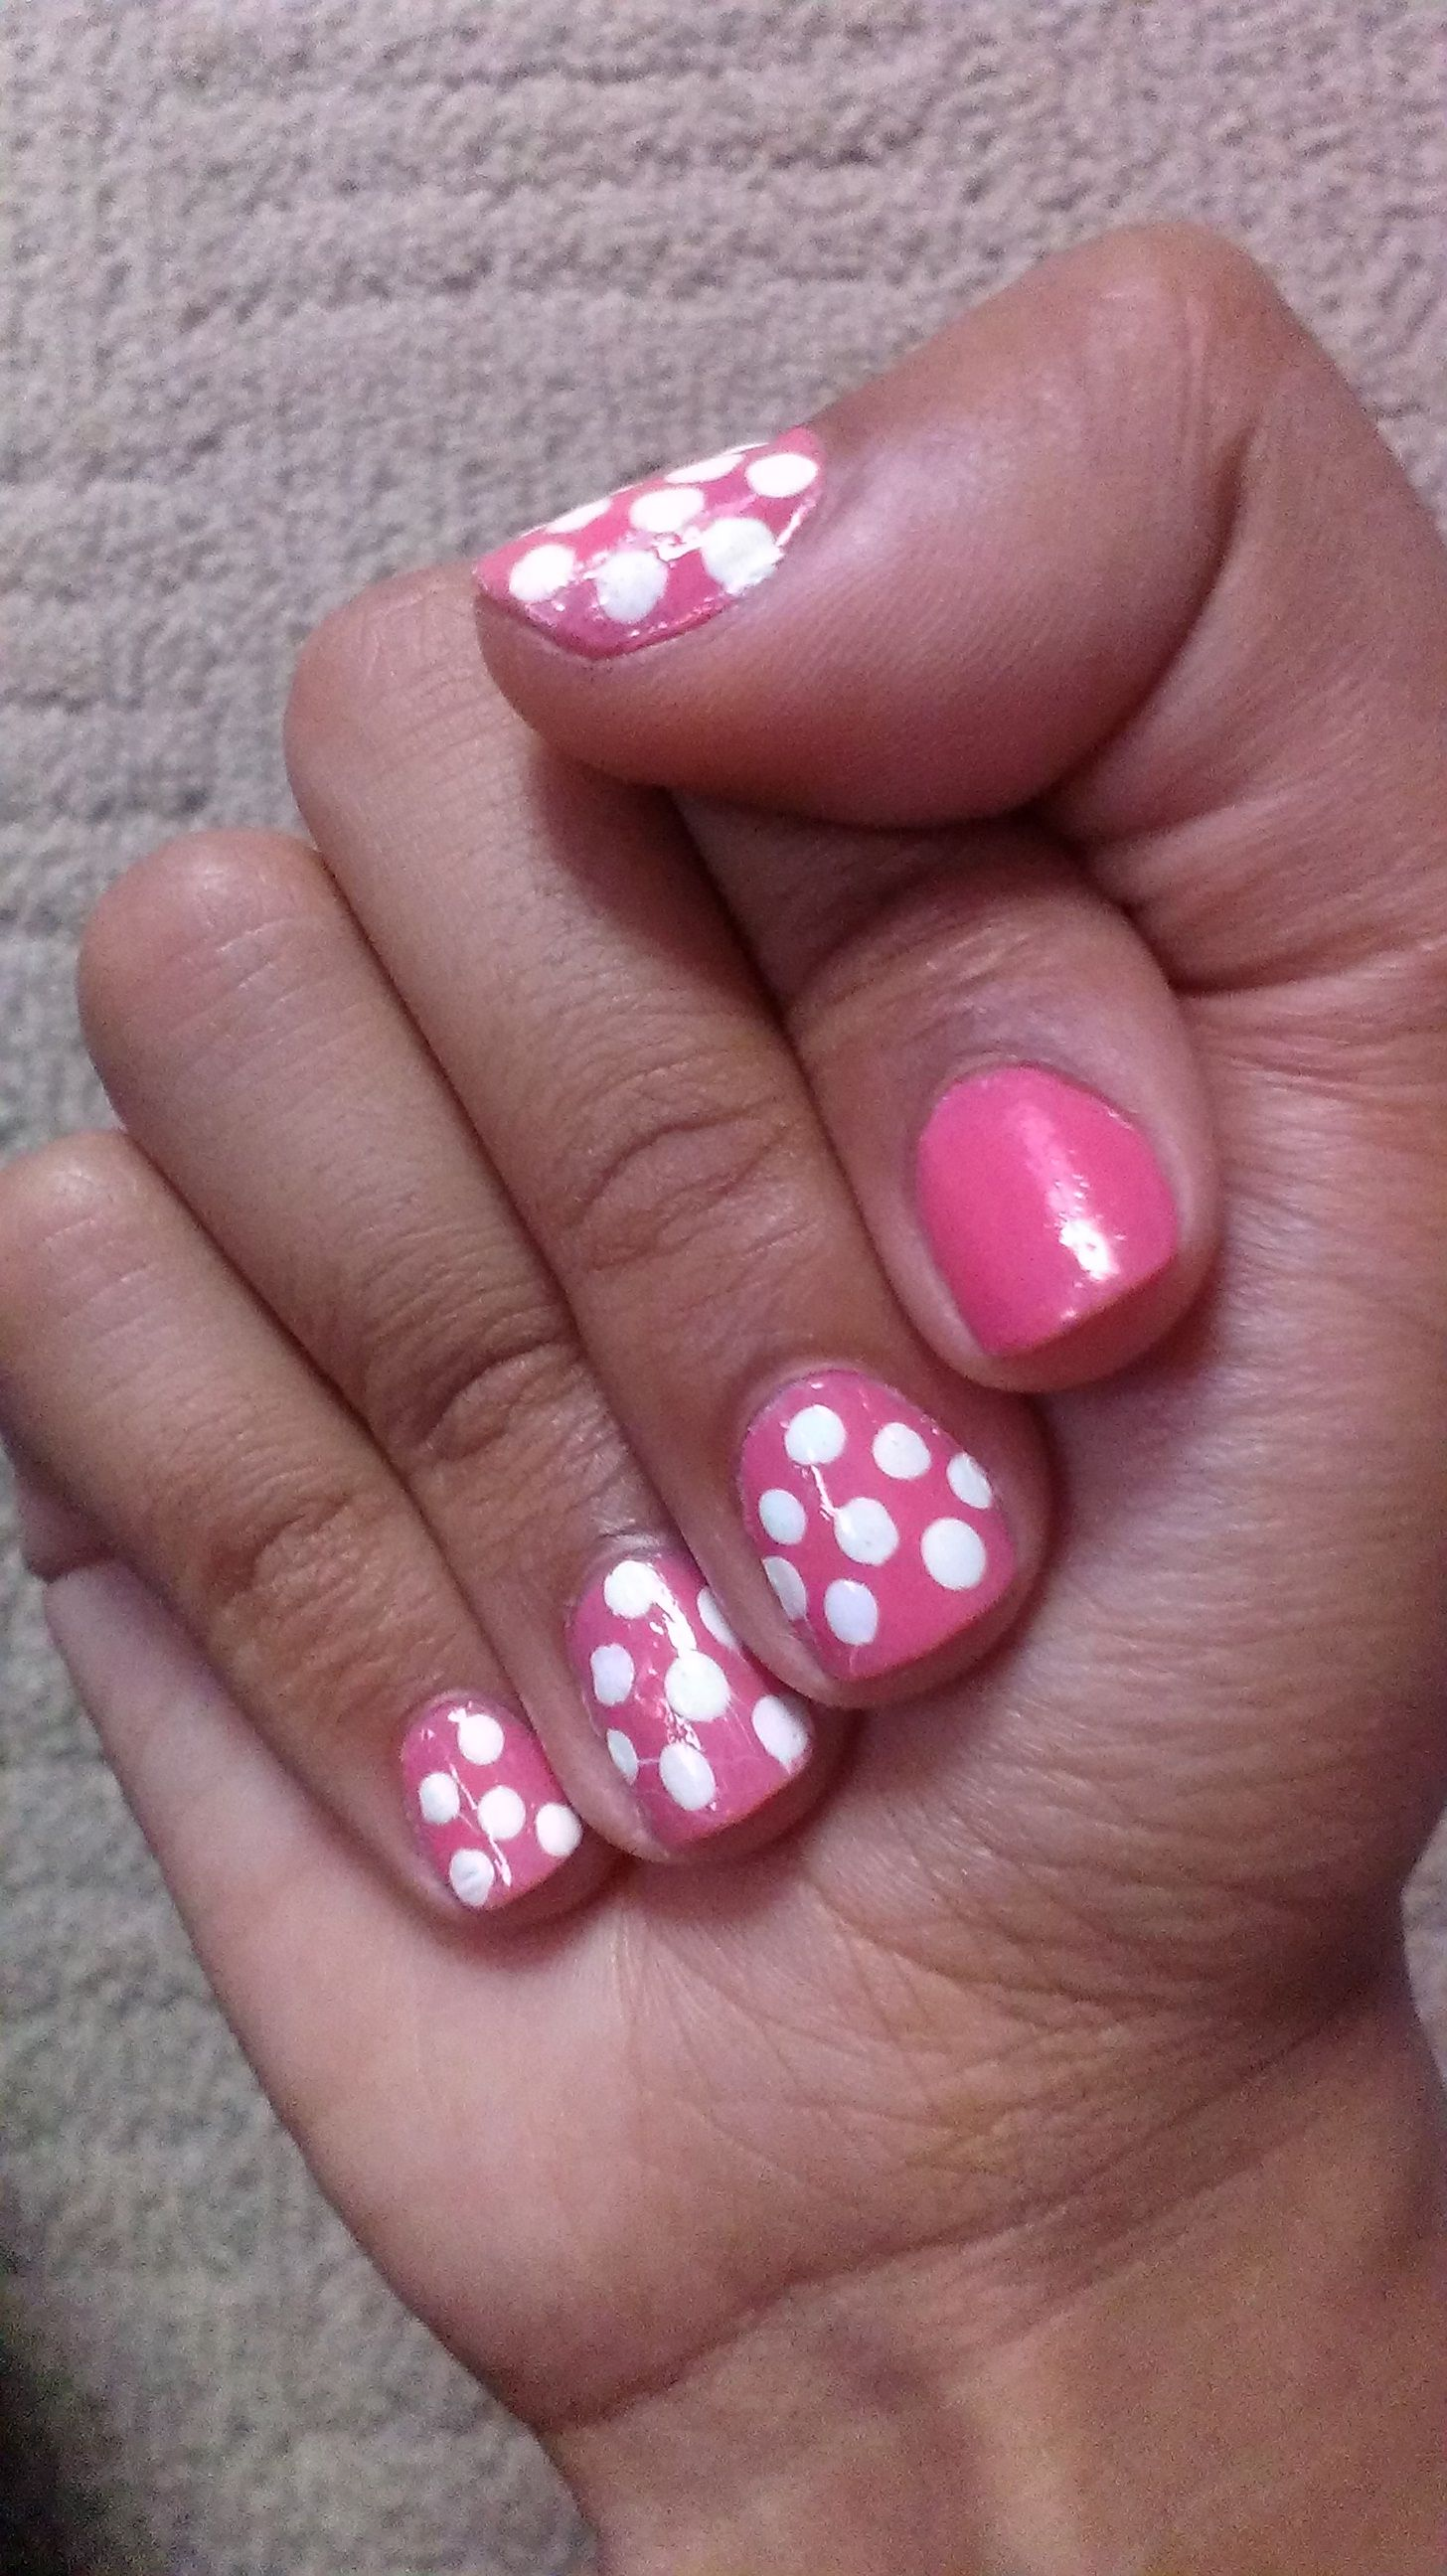 Polka dots. I used a bobby pin as a homemade dotting tool.